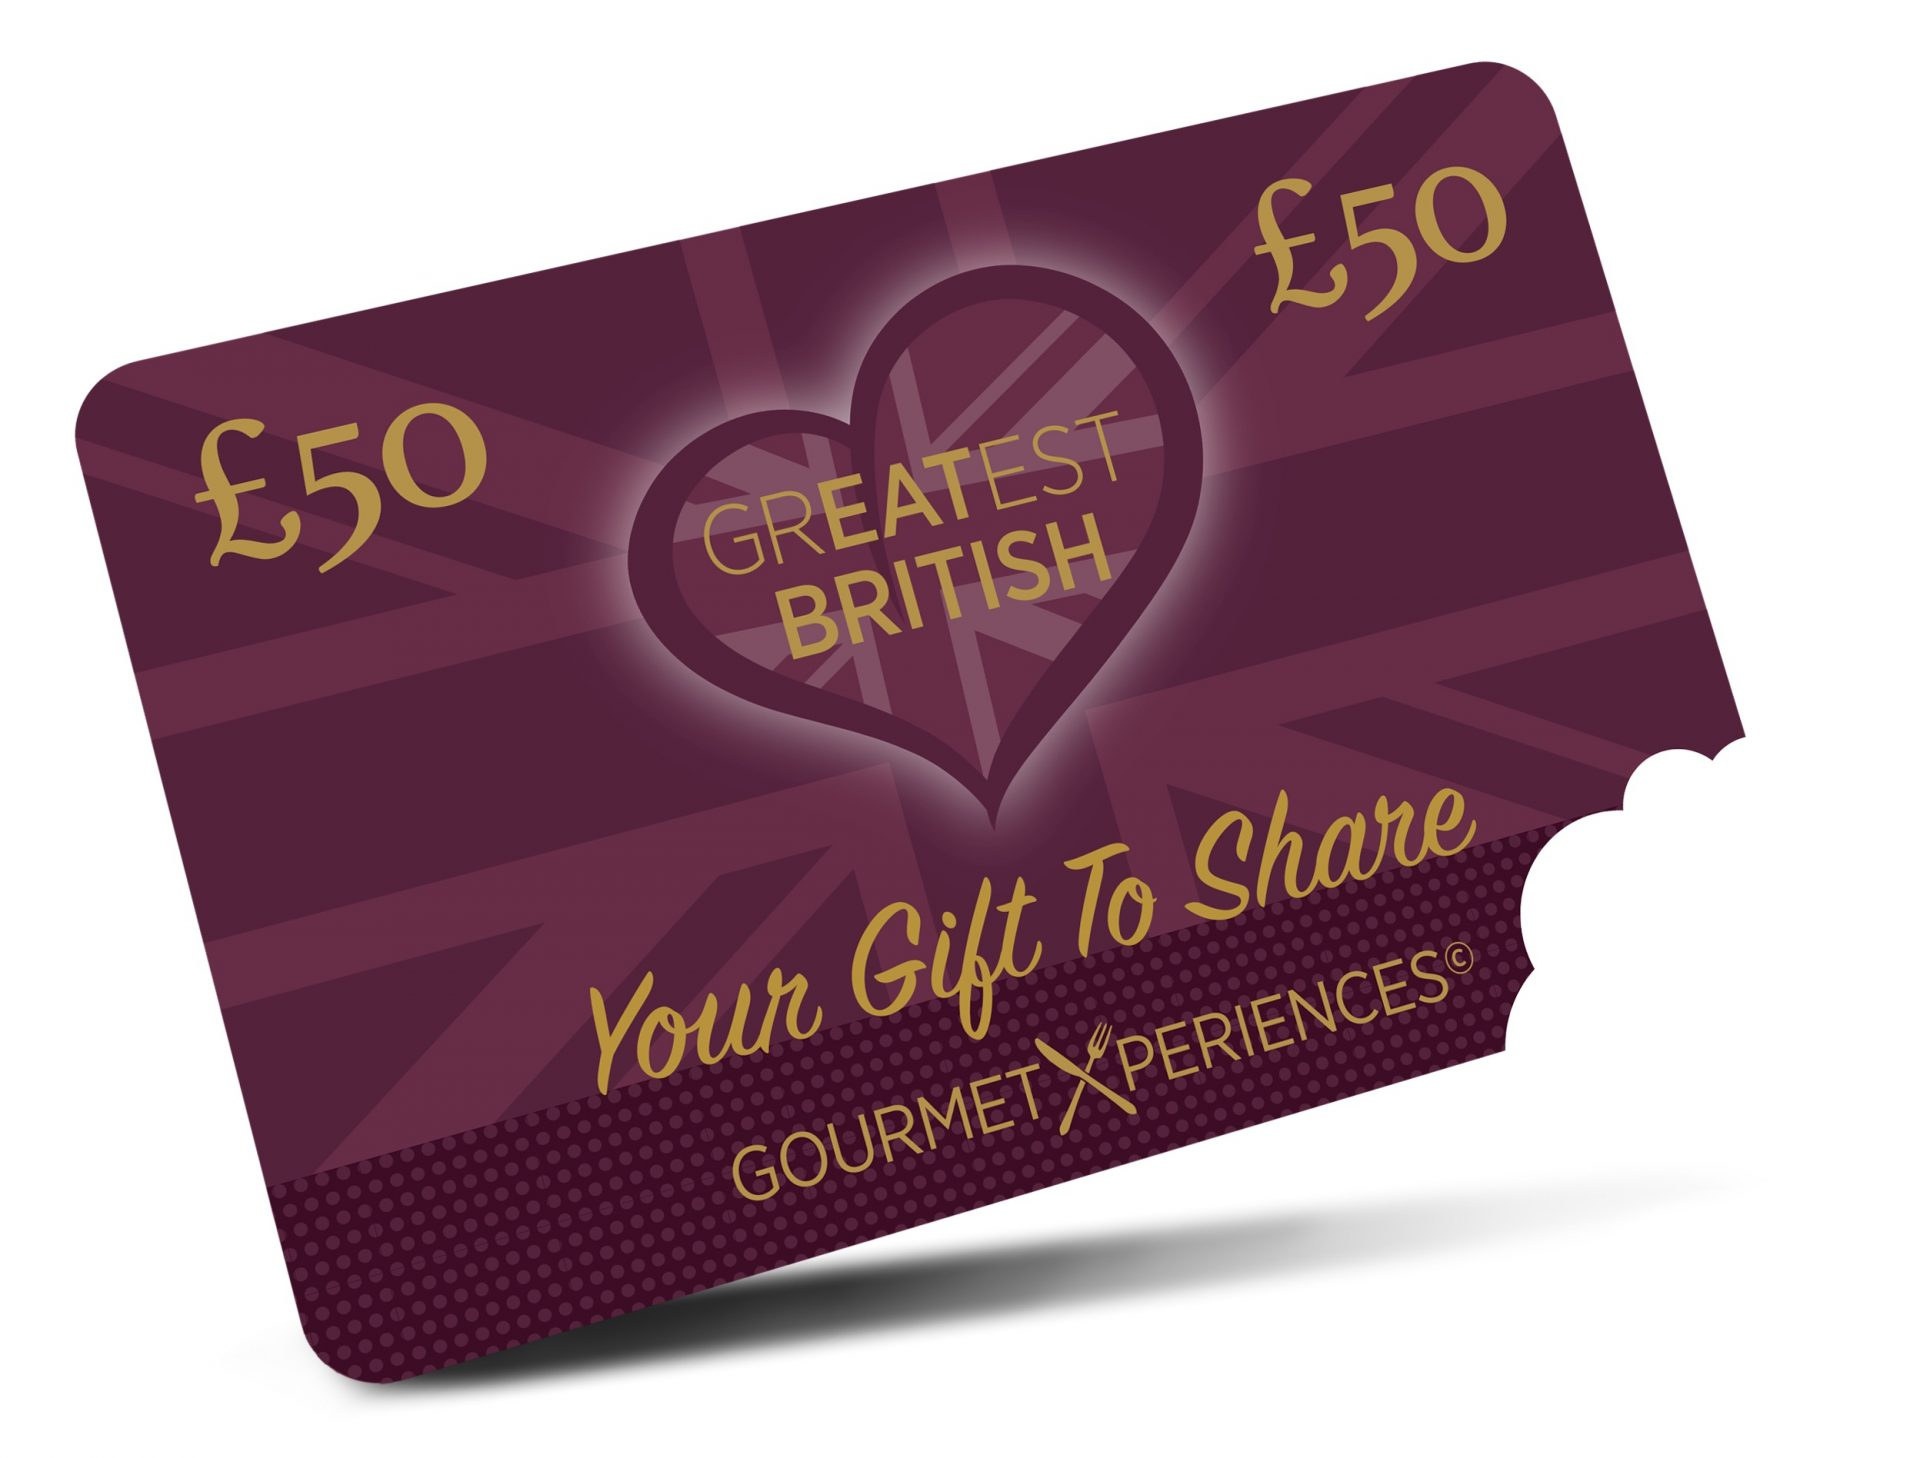 Greatest British Commission Free Gift card